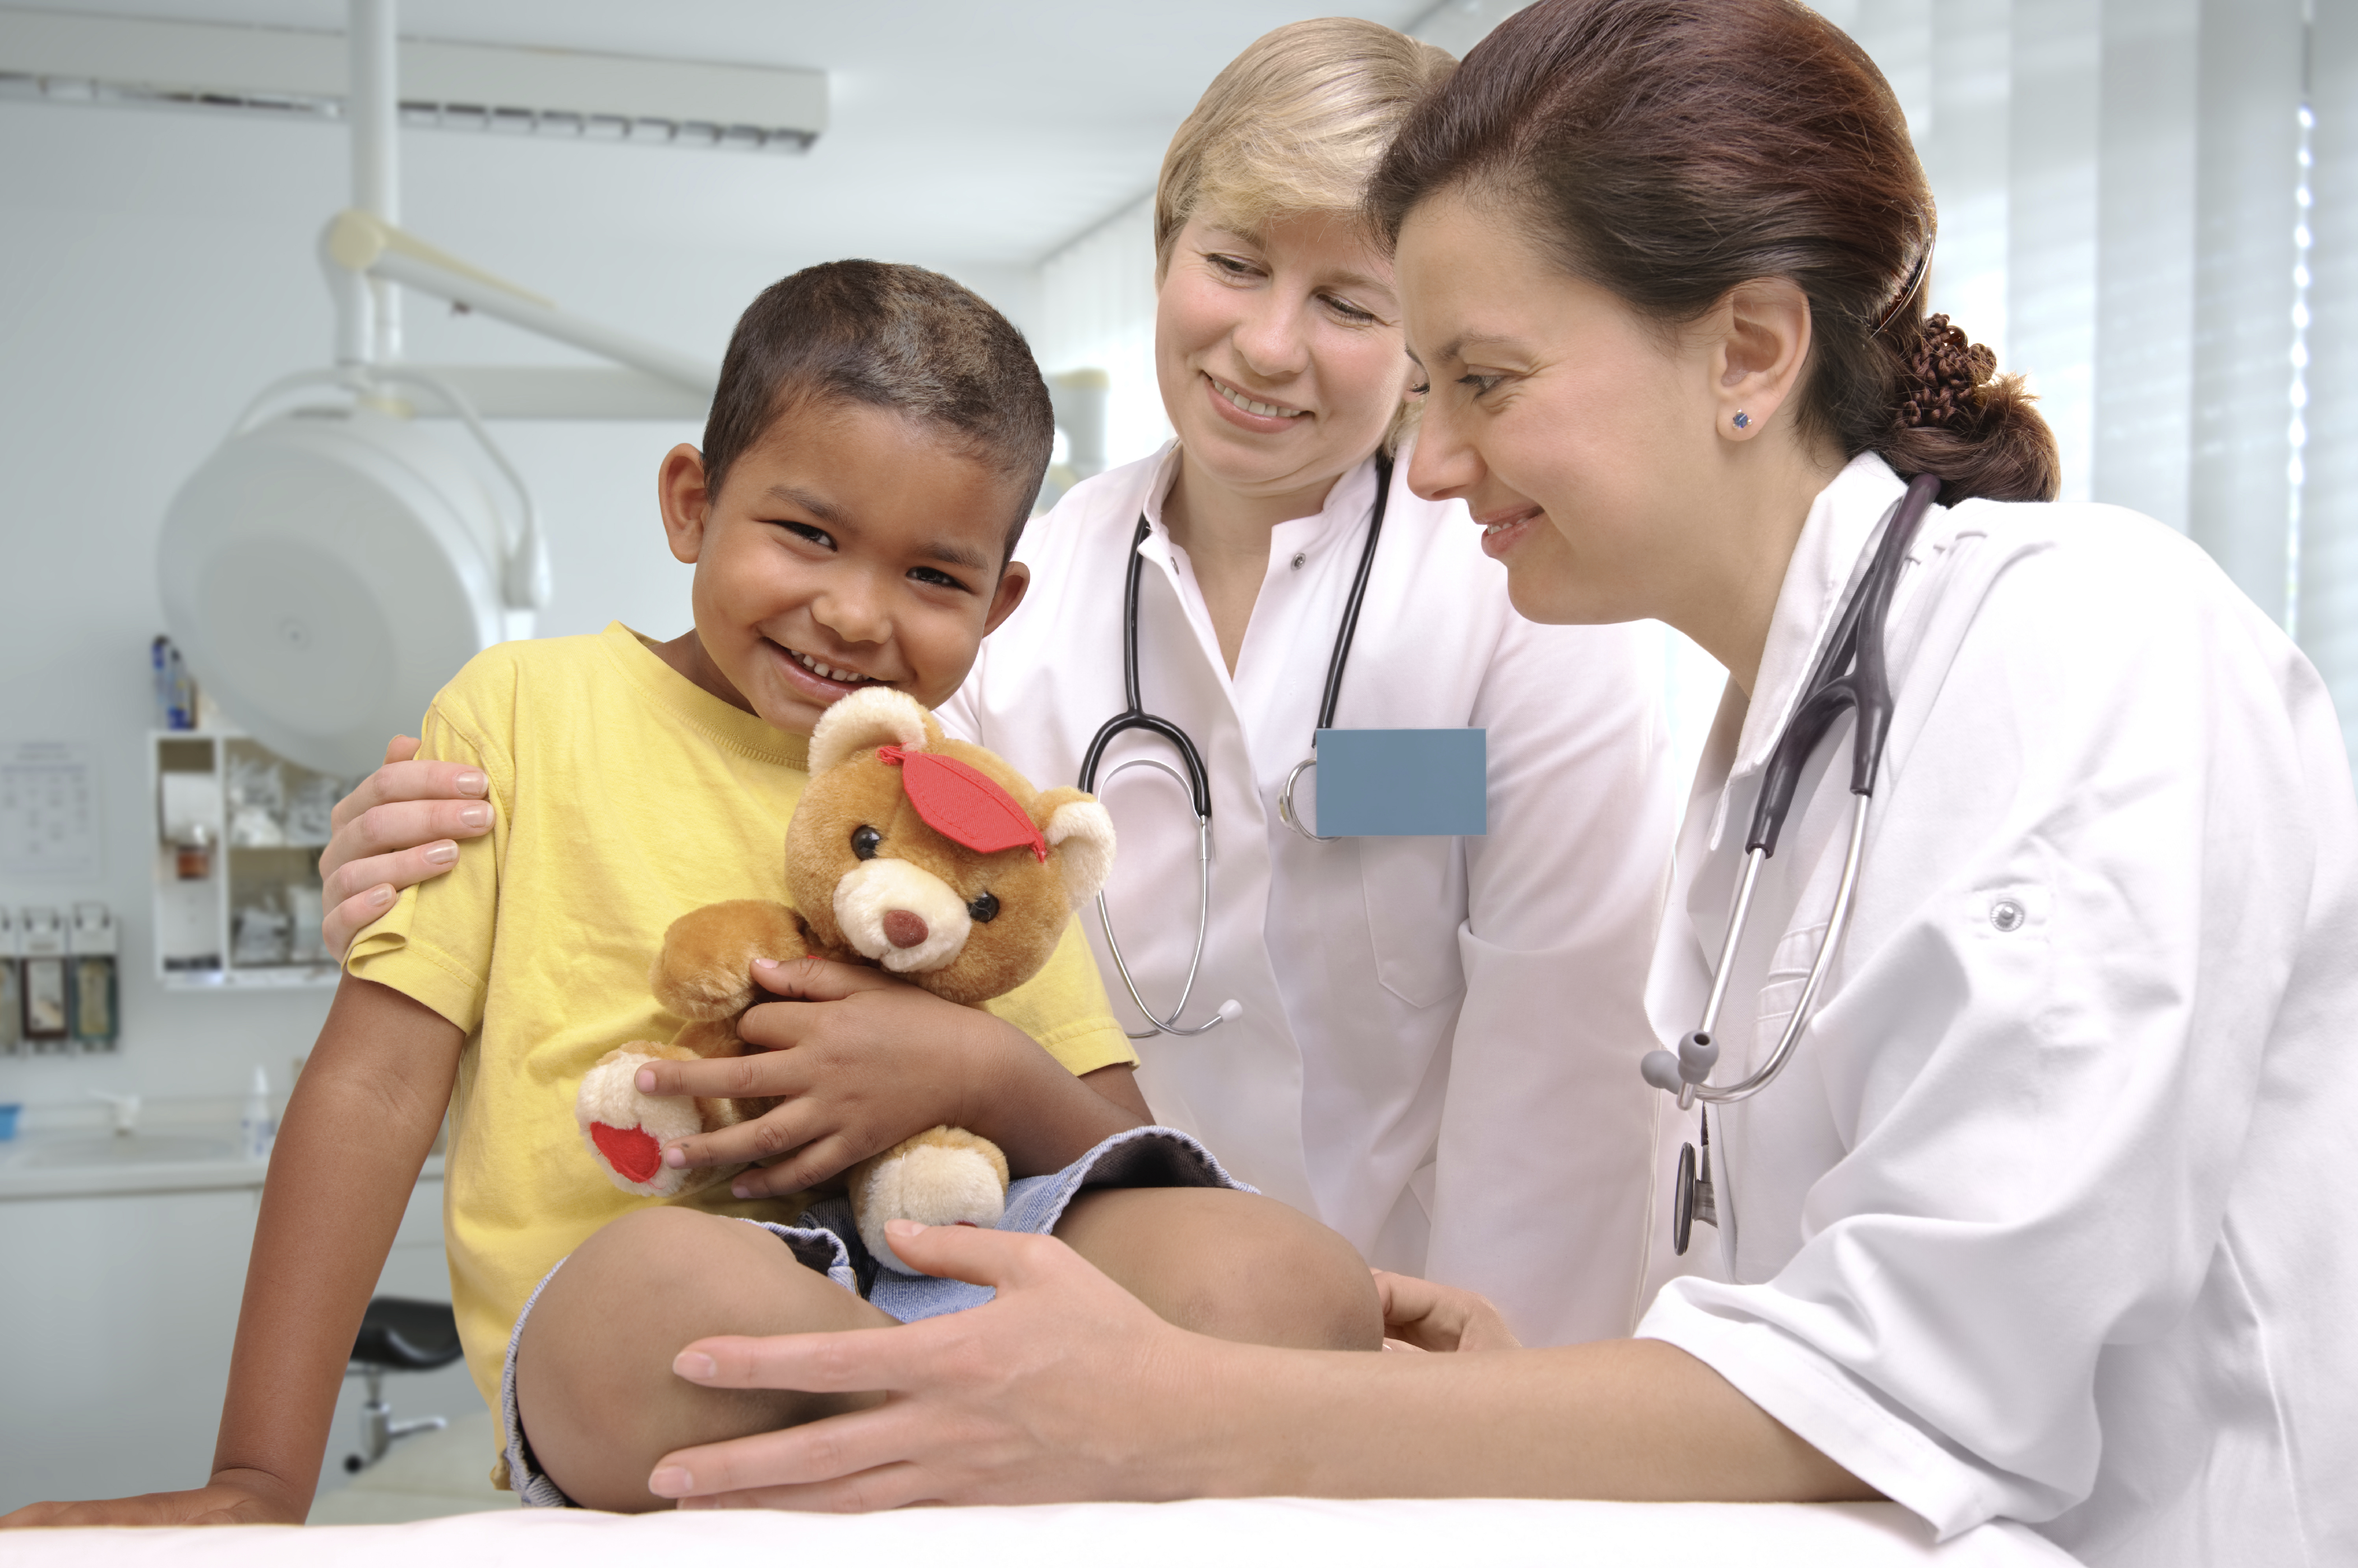 child with doctors